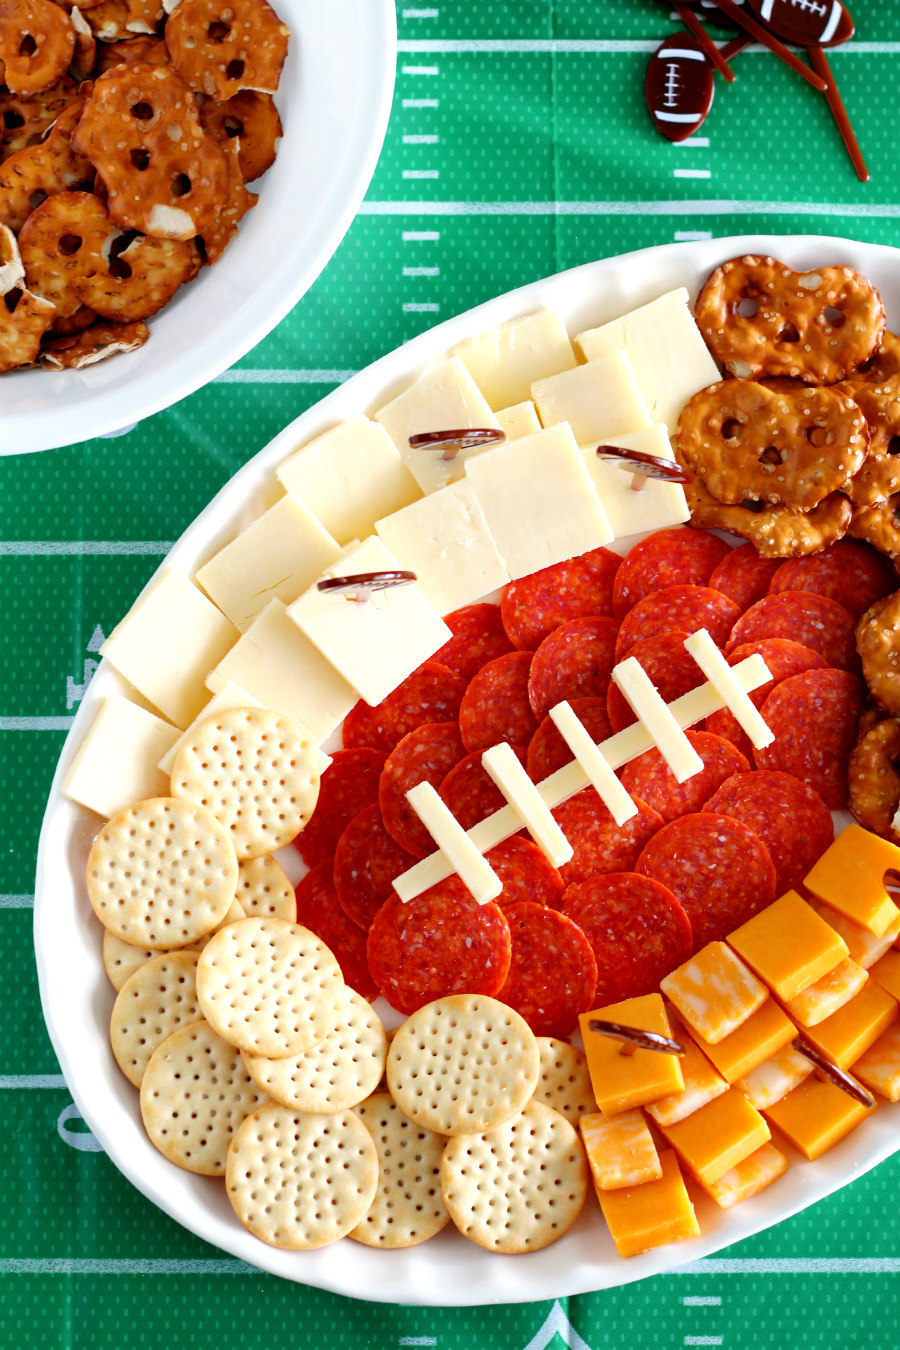 Affordable entertaining during football season isn't that hard when you bust out this Football Charcuterie Platter! This simple tailgating appetizer is sure to score a touchdown with party guests.